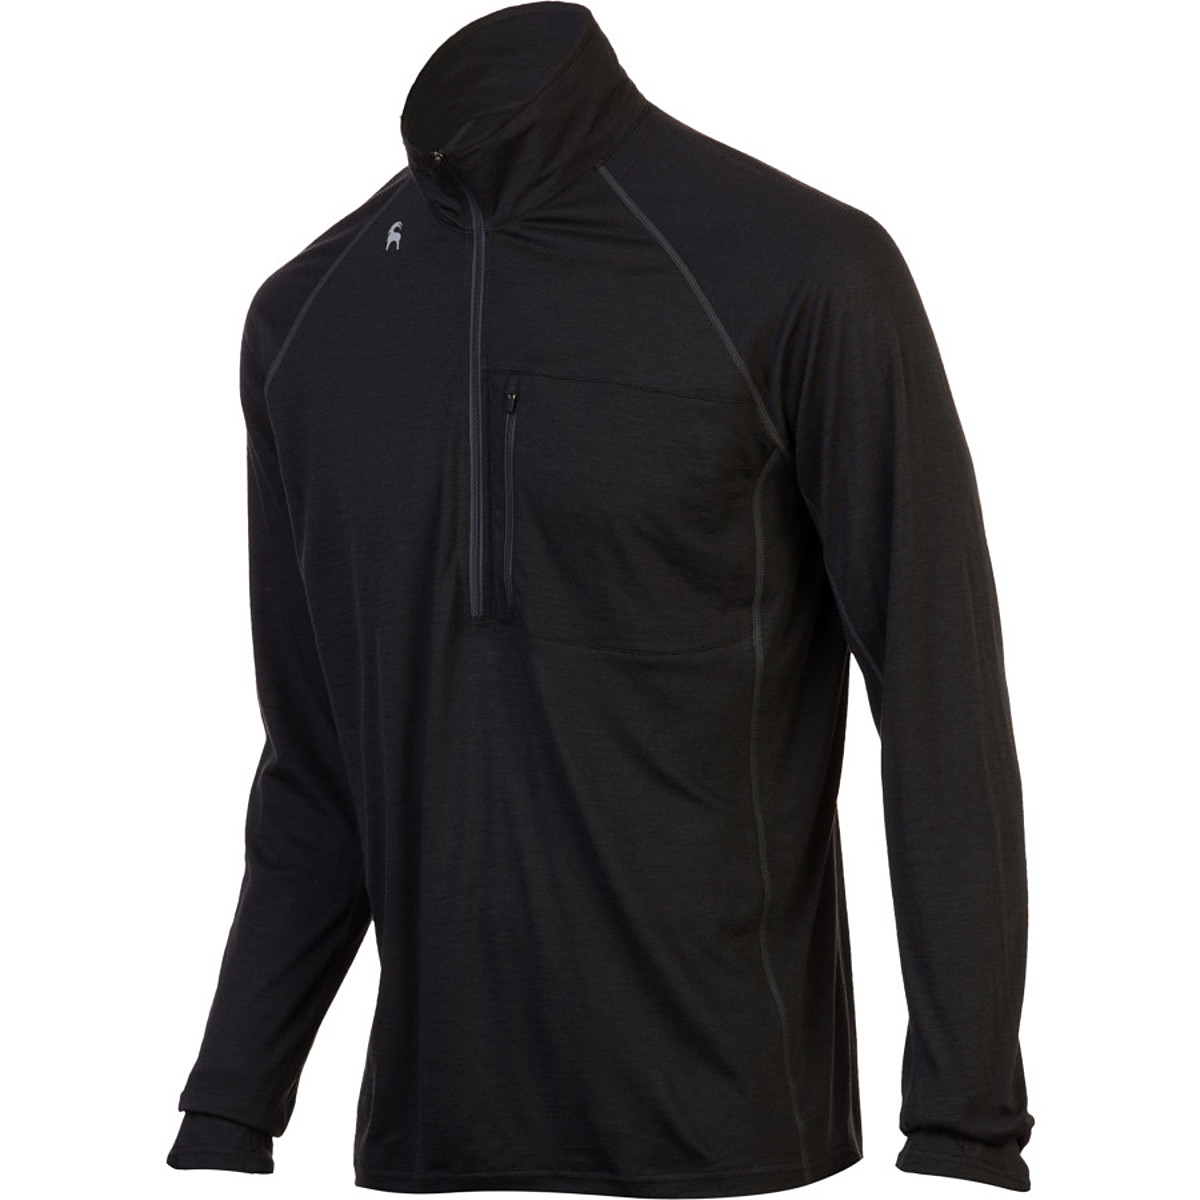 Backcountry.com Merino 150 Base Layer Long Sleeve